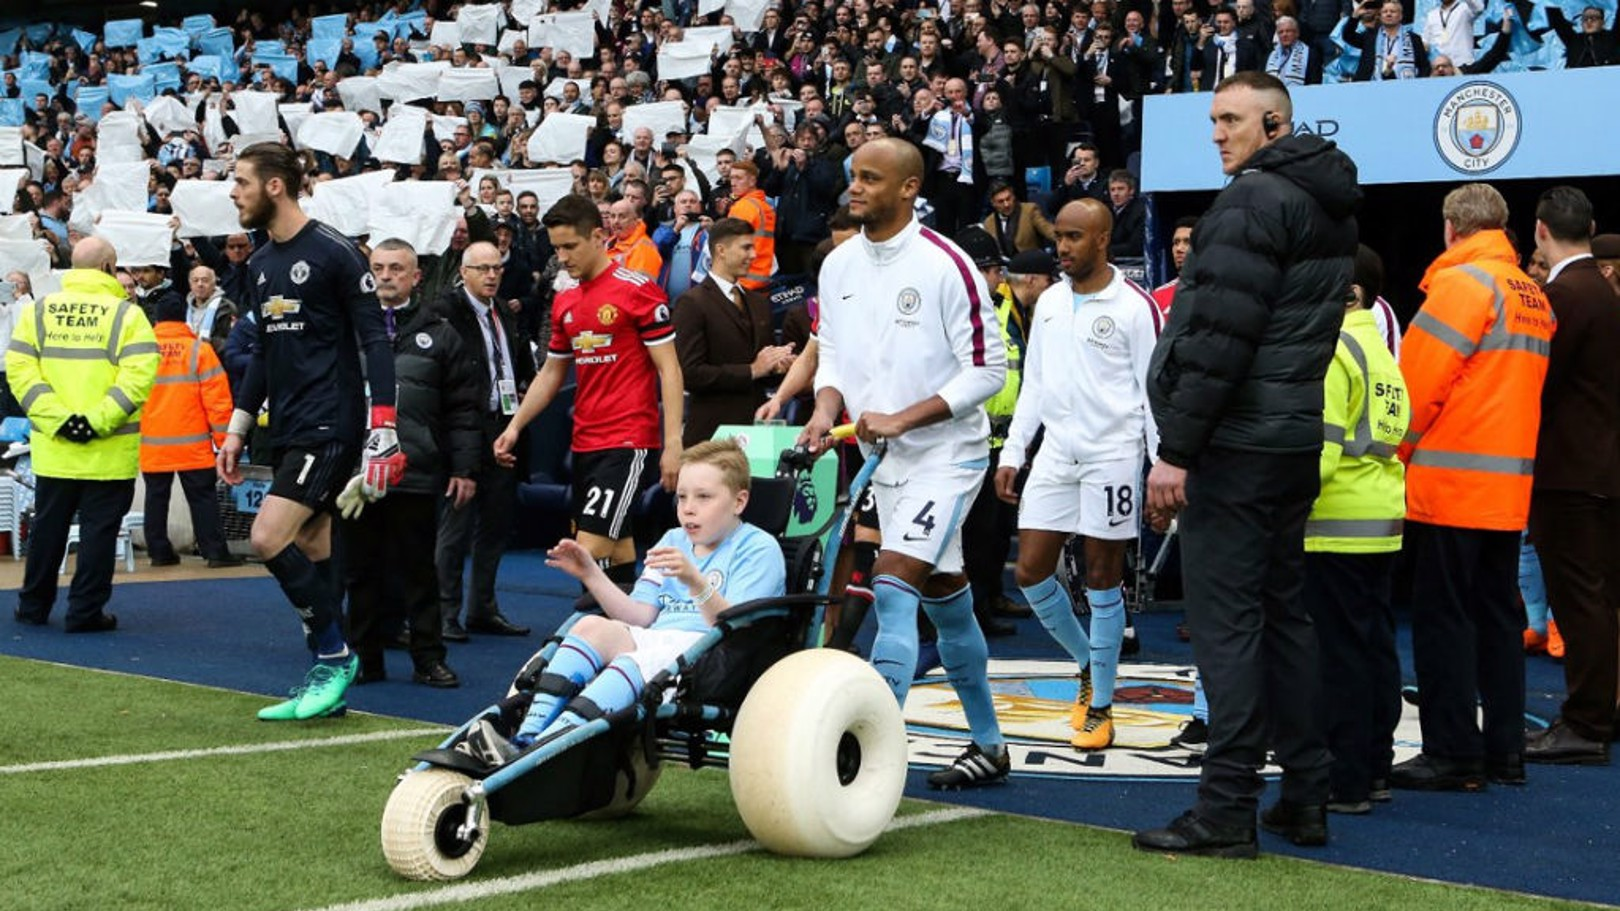 MAGIC MOMENT: Charlie Kay leads Manchester City out as mascot ahead of the Manchester derby